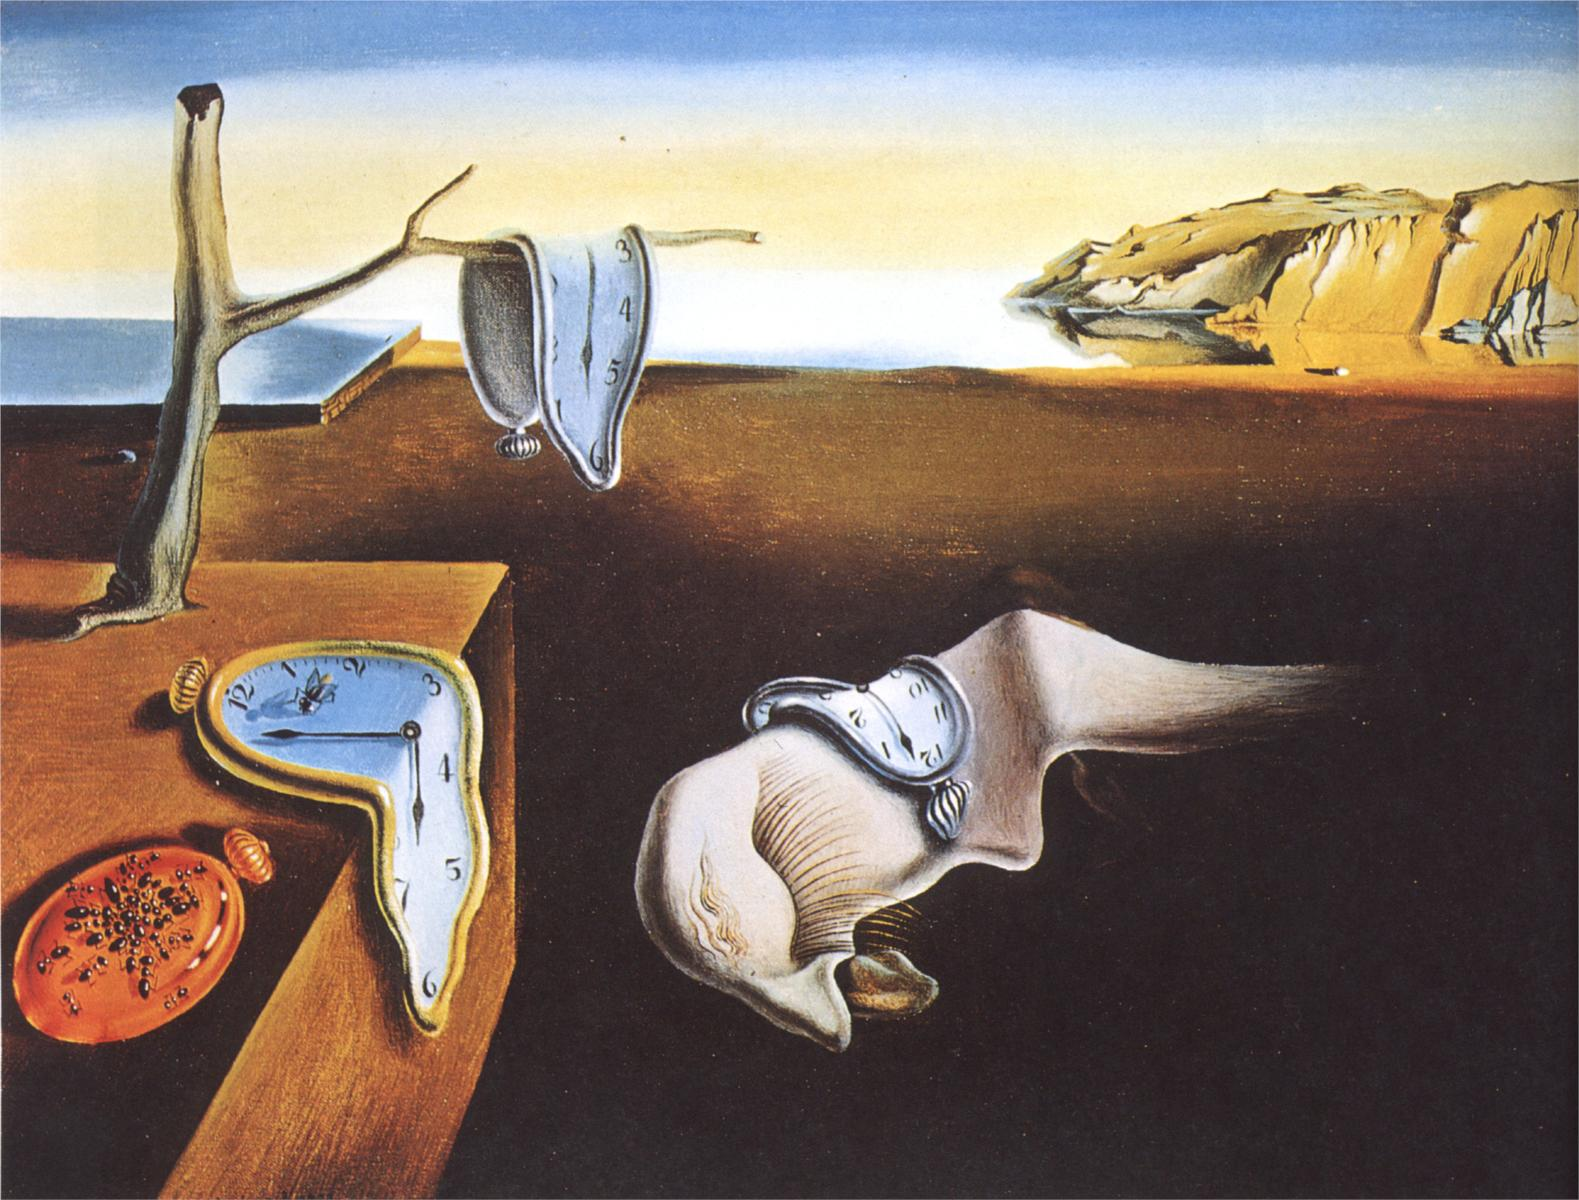 Salvador Dali - The Persistence of Memory - 1931